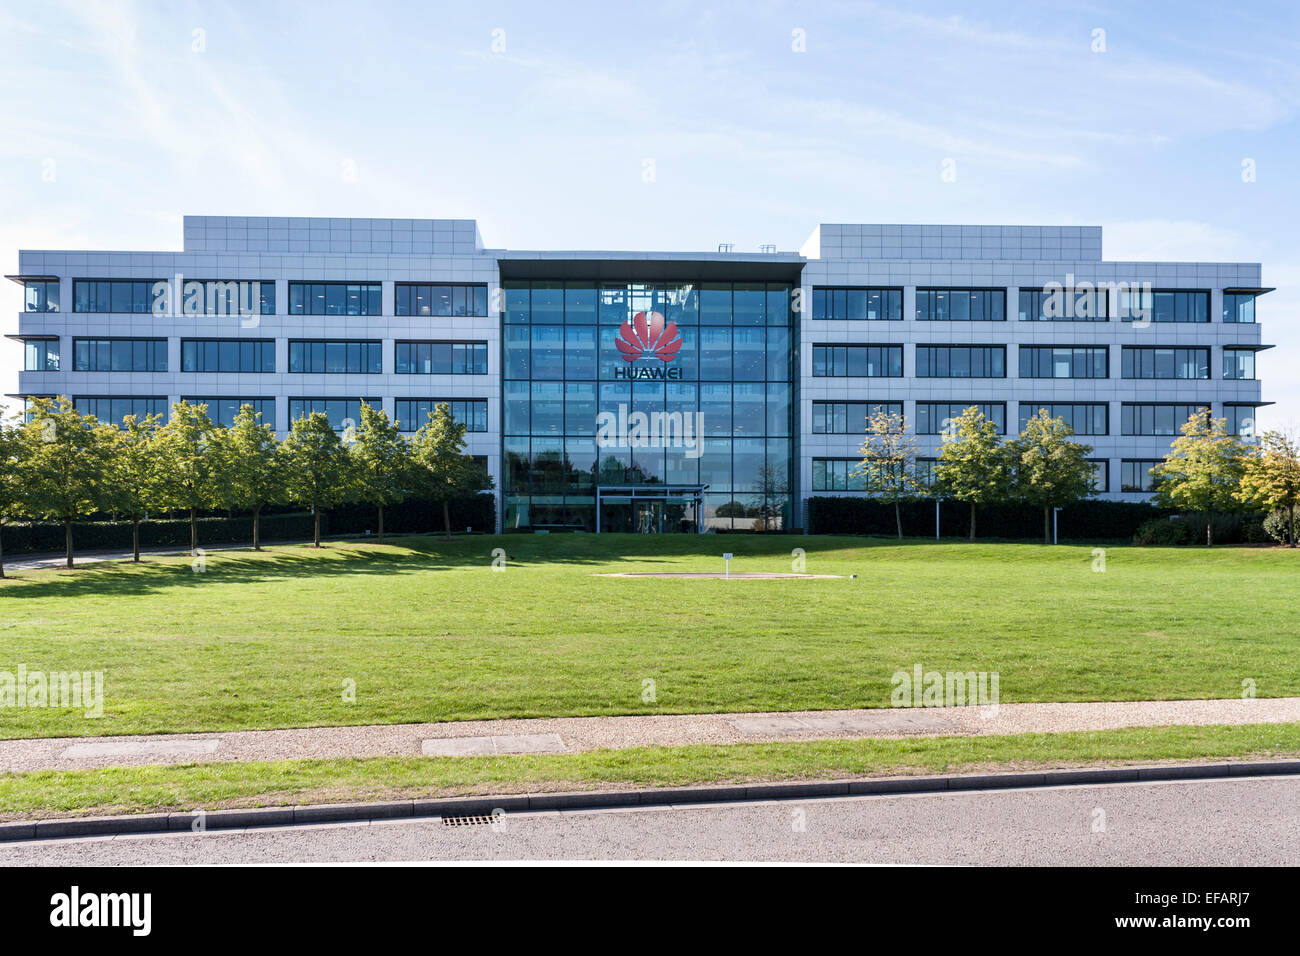 Offices of Chinese mobile phone manufacturer Huawei, Reading, Berkshire, England, GB, UK. - Stock Image